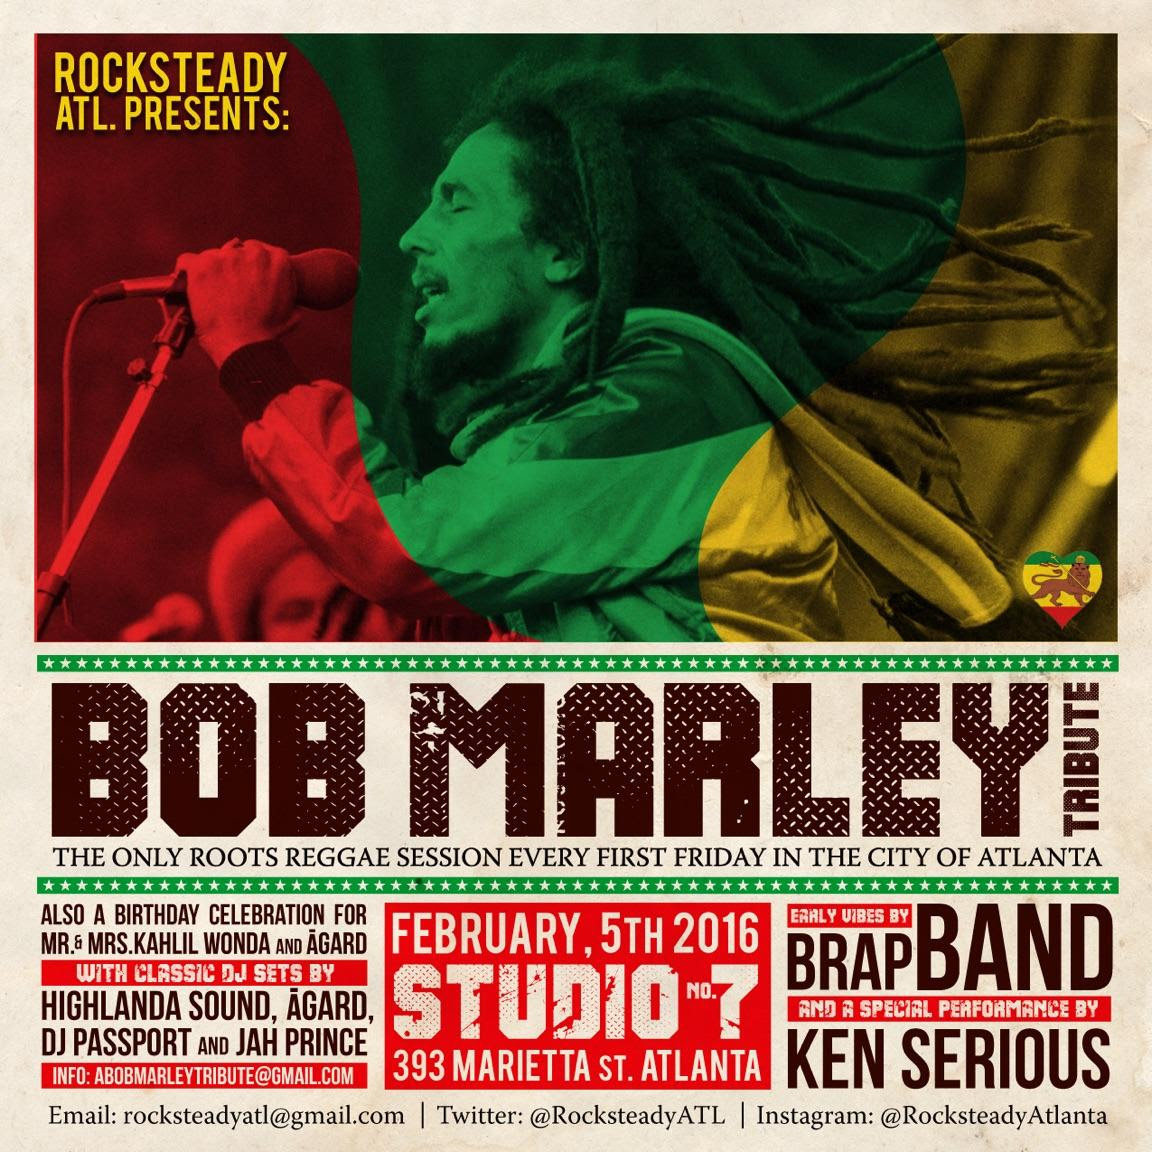 FRI, FEB 5, 2016 AT 9:00 PM BOB MARLEY 71ST BIRTHDAY BASH AND AQUARIUS CELEBRATION Studio No. 7, Atlanta, GA